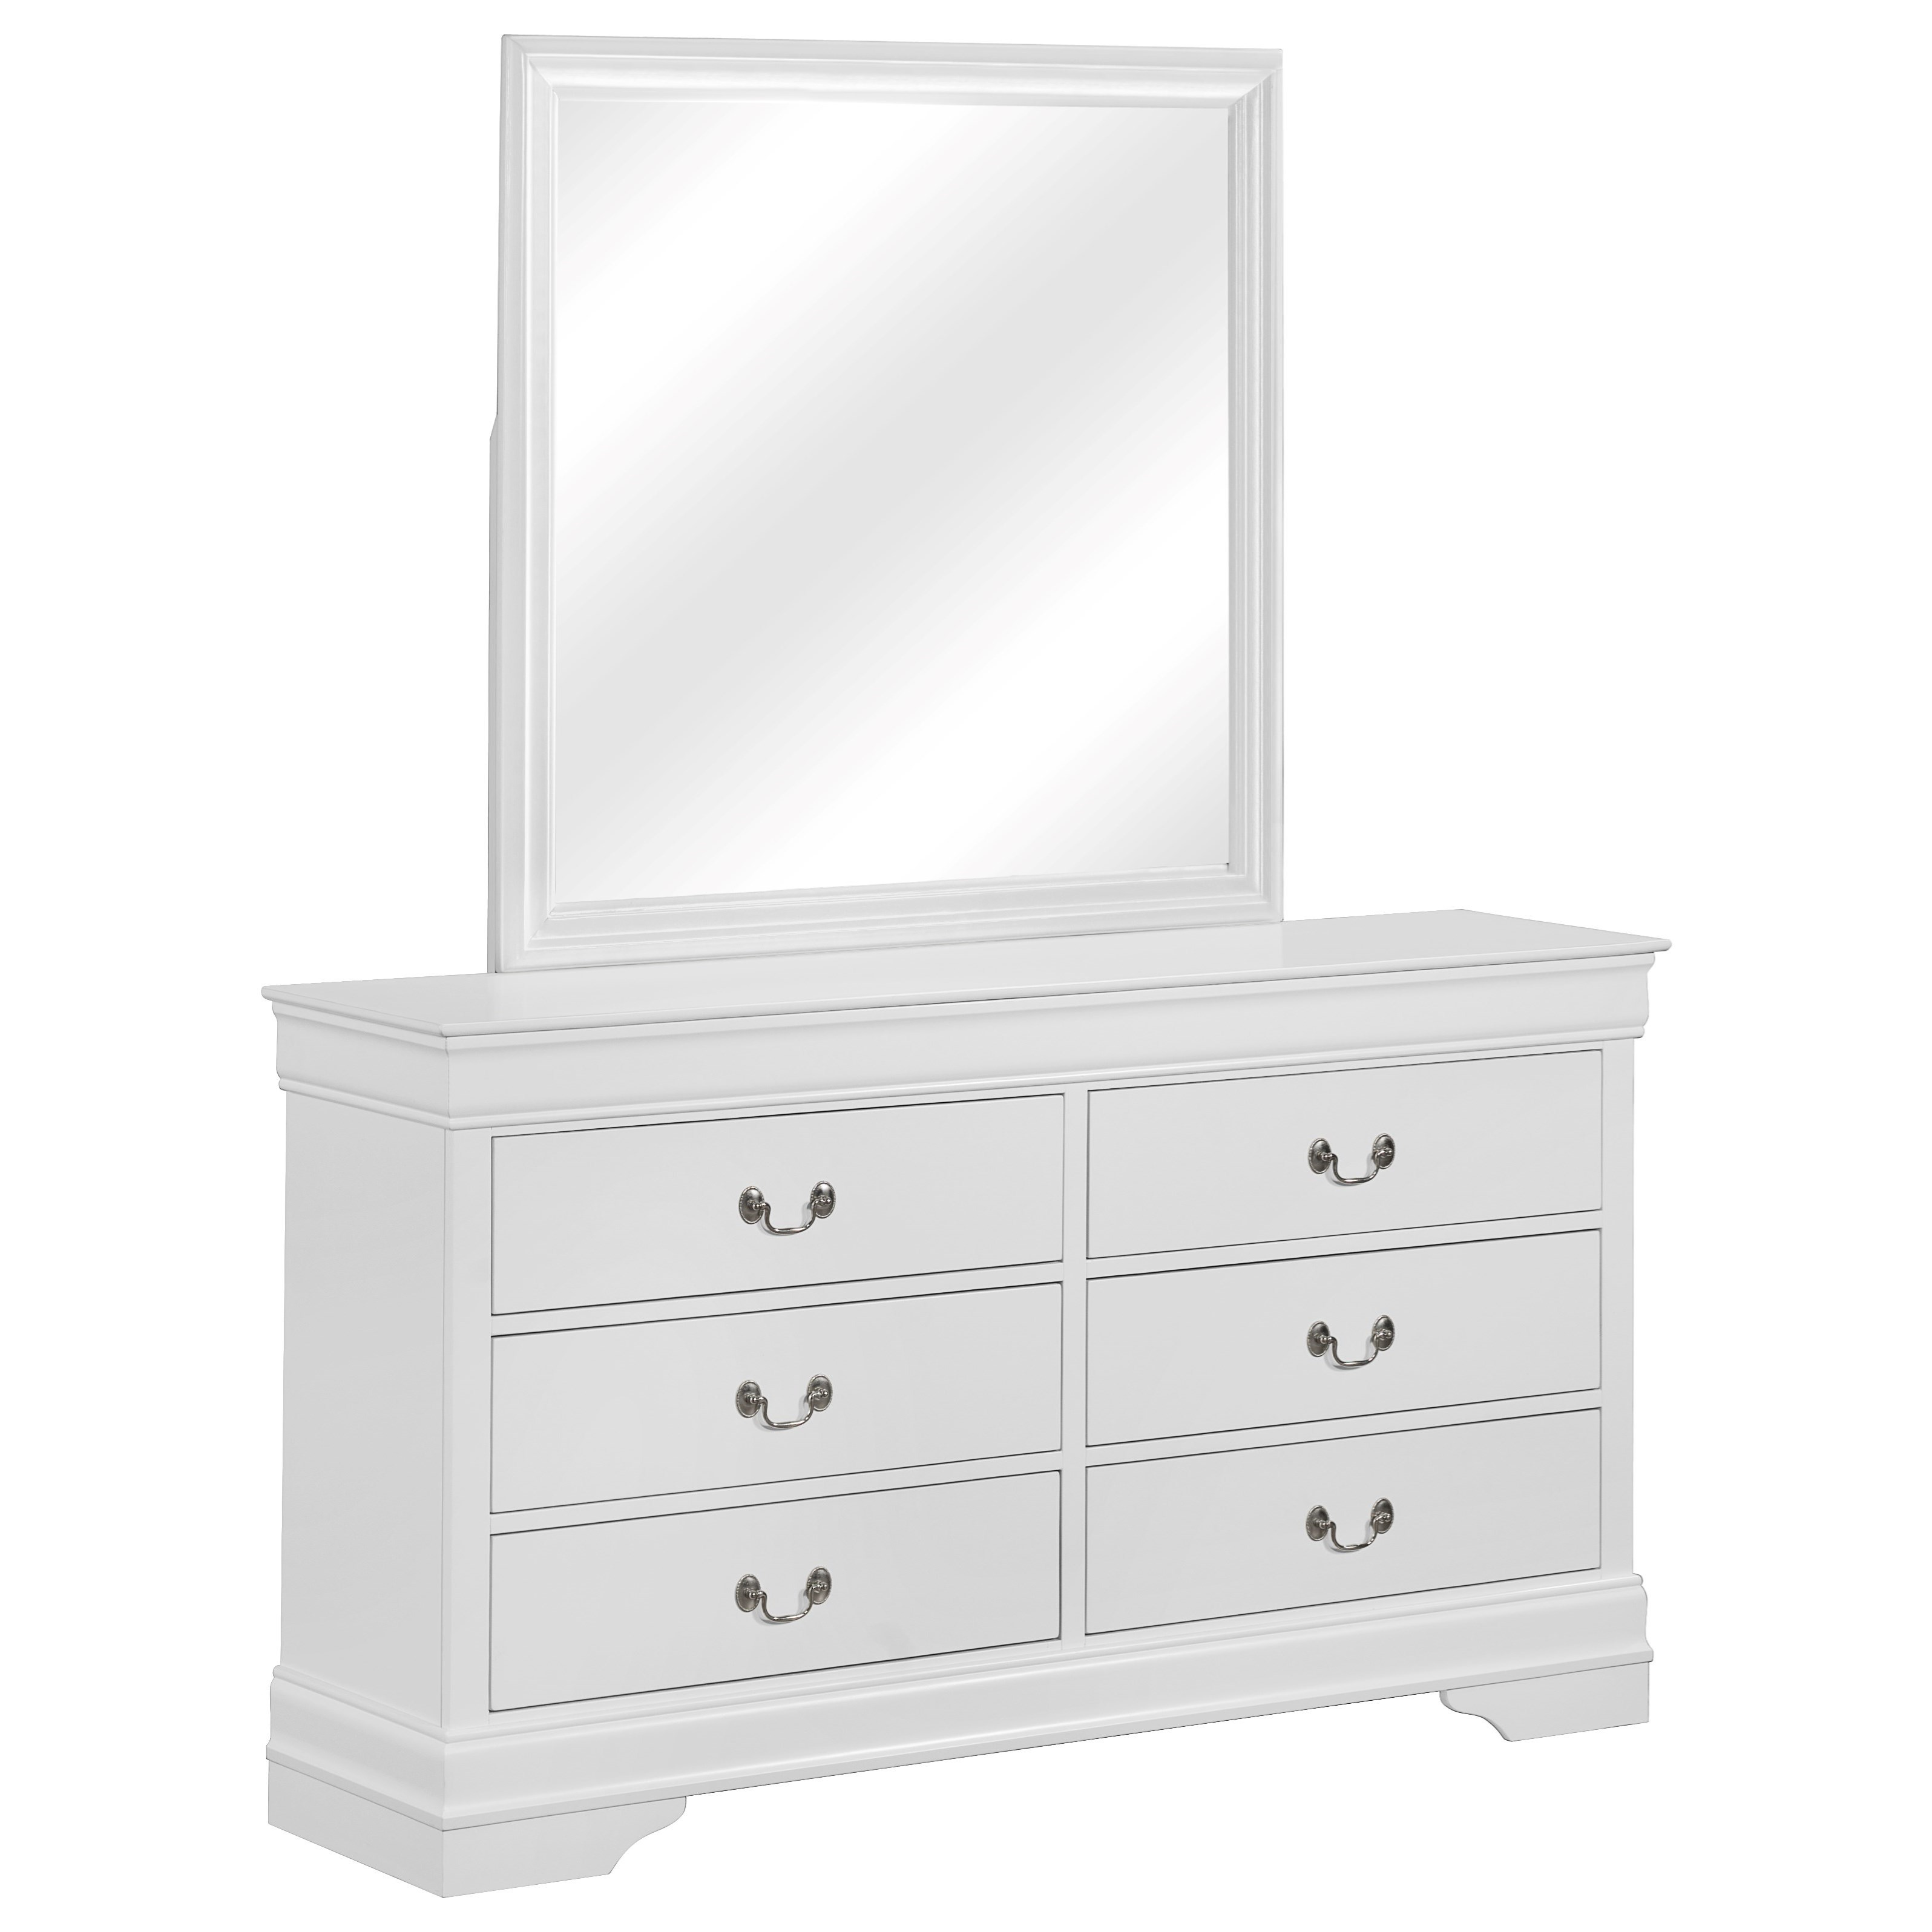 Louis Philip 6 Drawer Dresser with Mirror by Crown Mark at Northeast Factory Direct